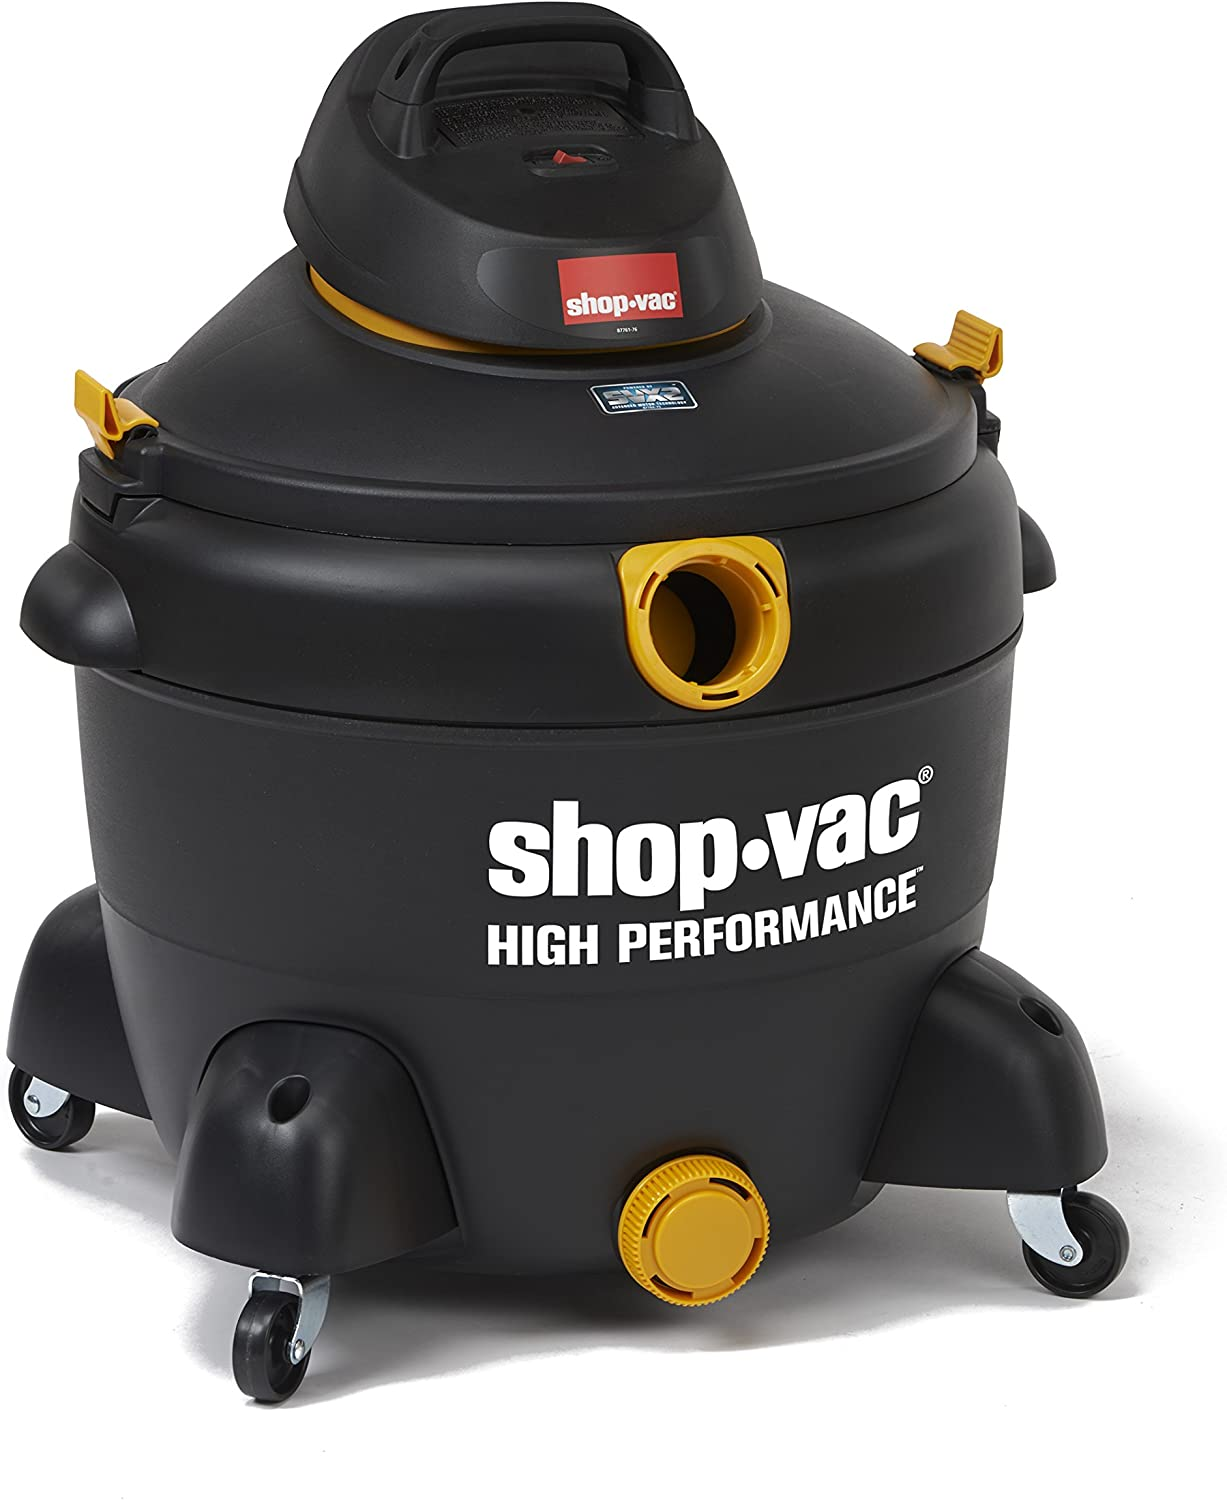 Shop-Vac 5987400 16 gallon 6.5 Peak HP High Performance Series Wet Dry Vacuum, Black/Yellow